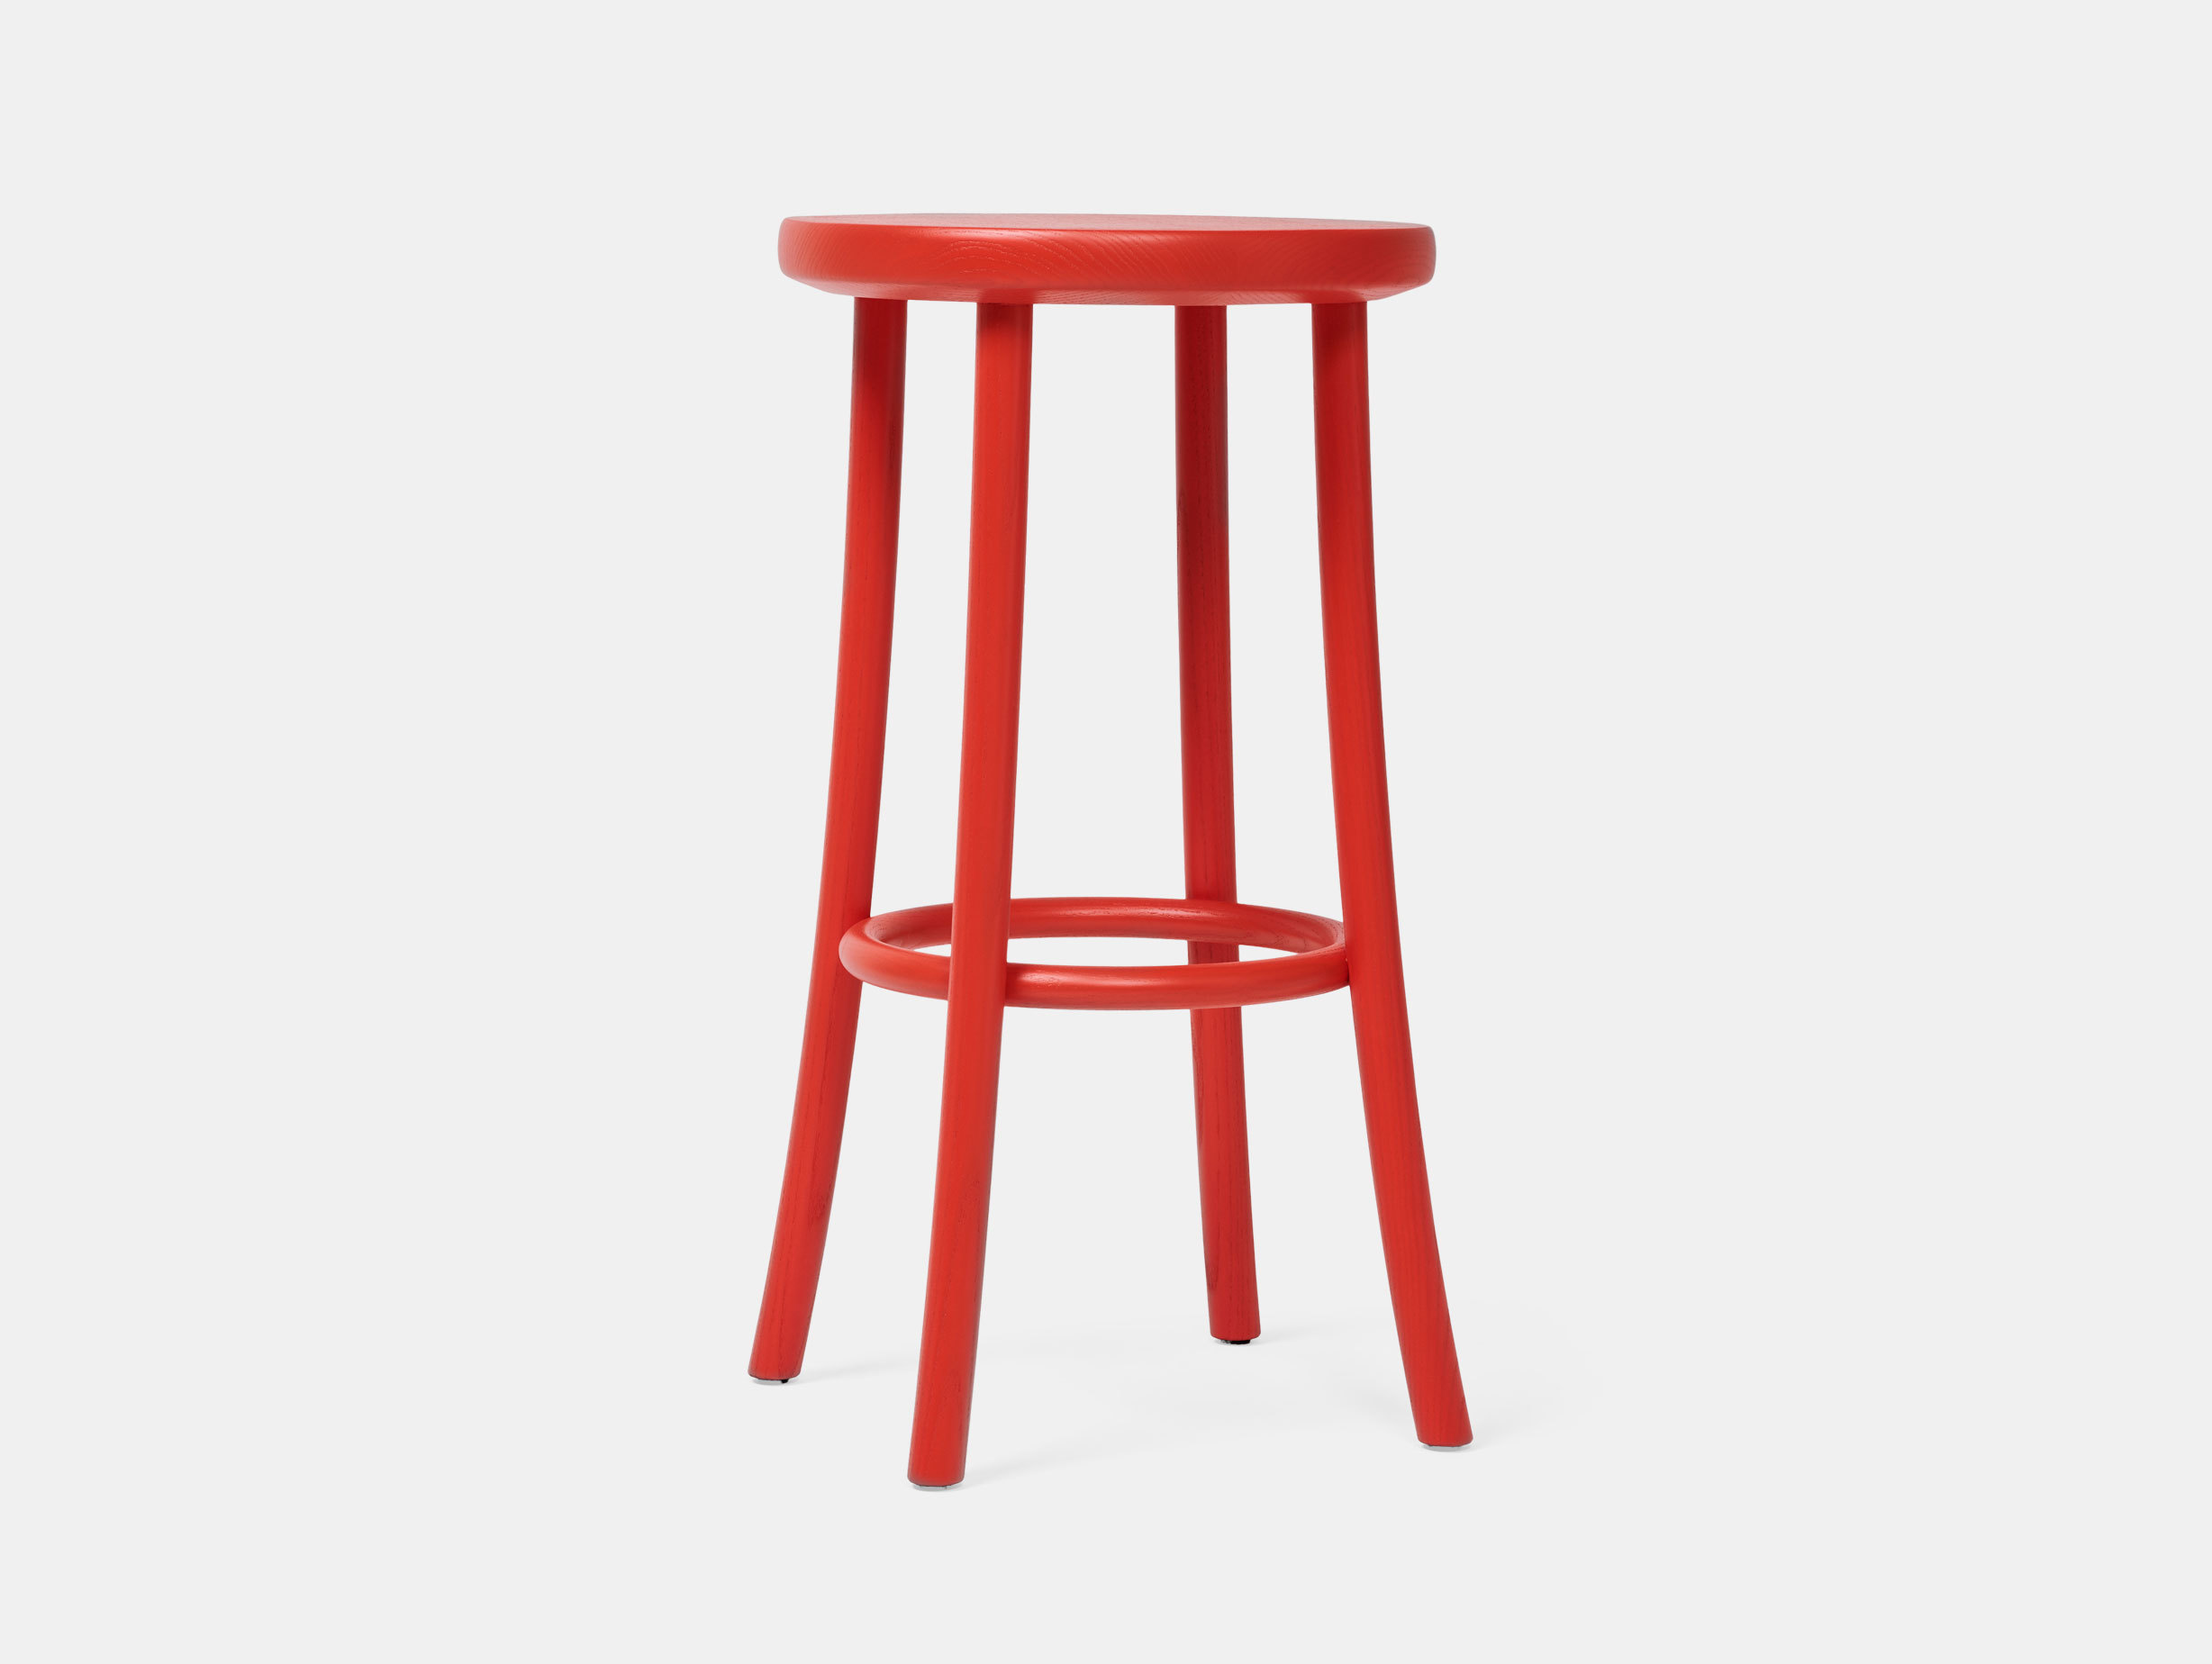 Mattiazzi Zampa High Stool Red 2 Jasper Morrison